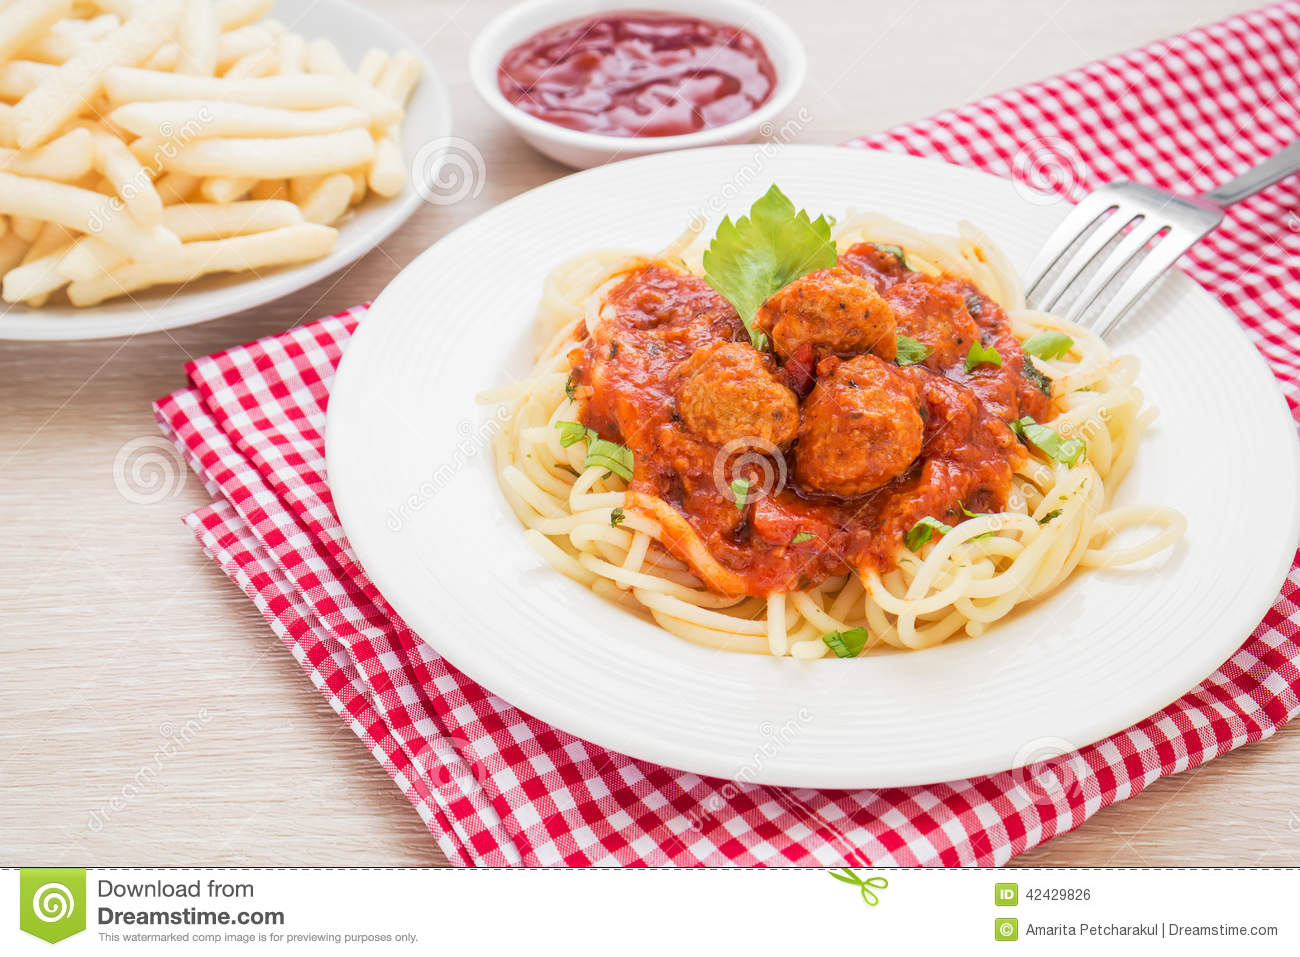 Spaghetti With Meatballs In Tomato Sauce And French Fries